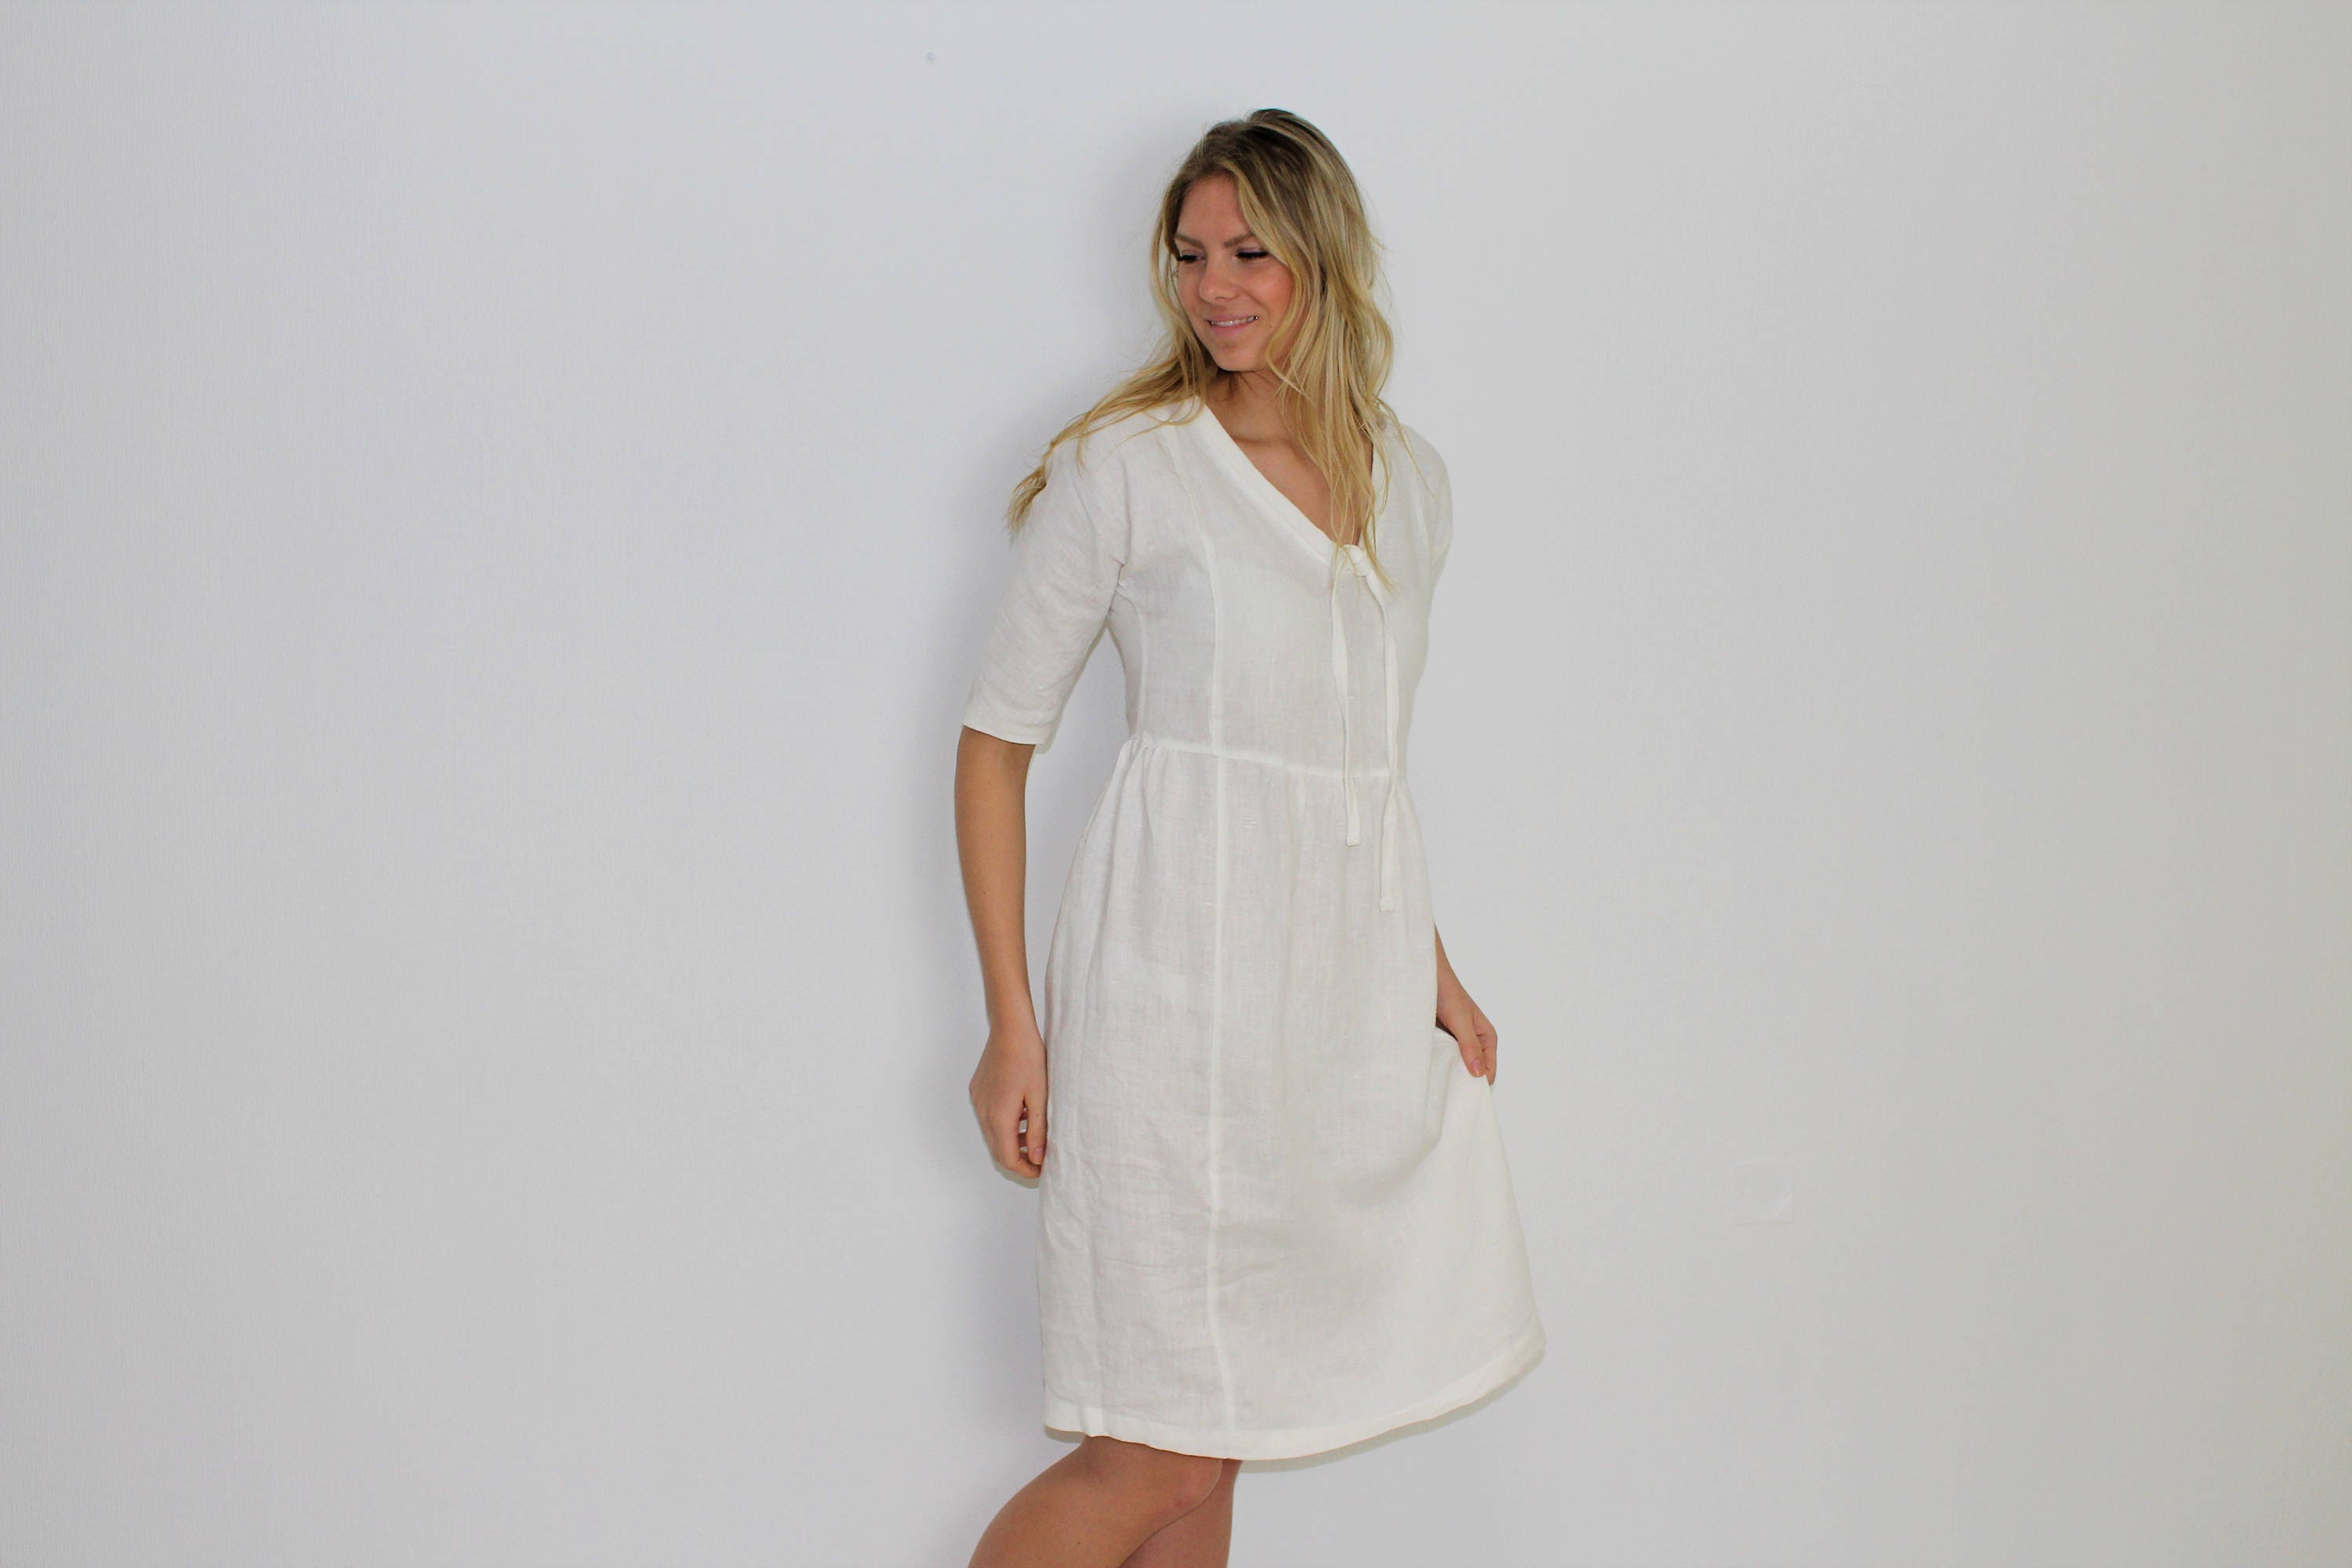 50: Linen Summer Dresses For Weddings At Websimilar.org